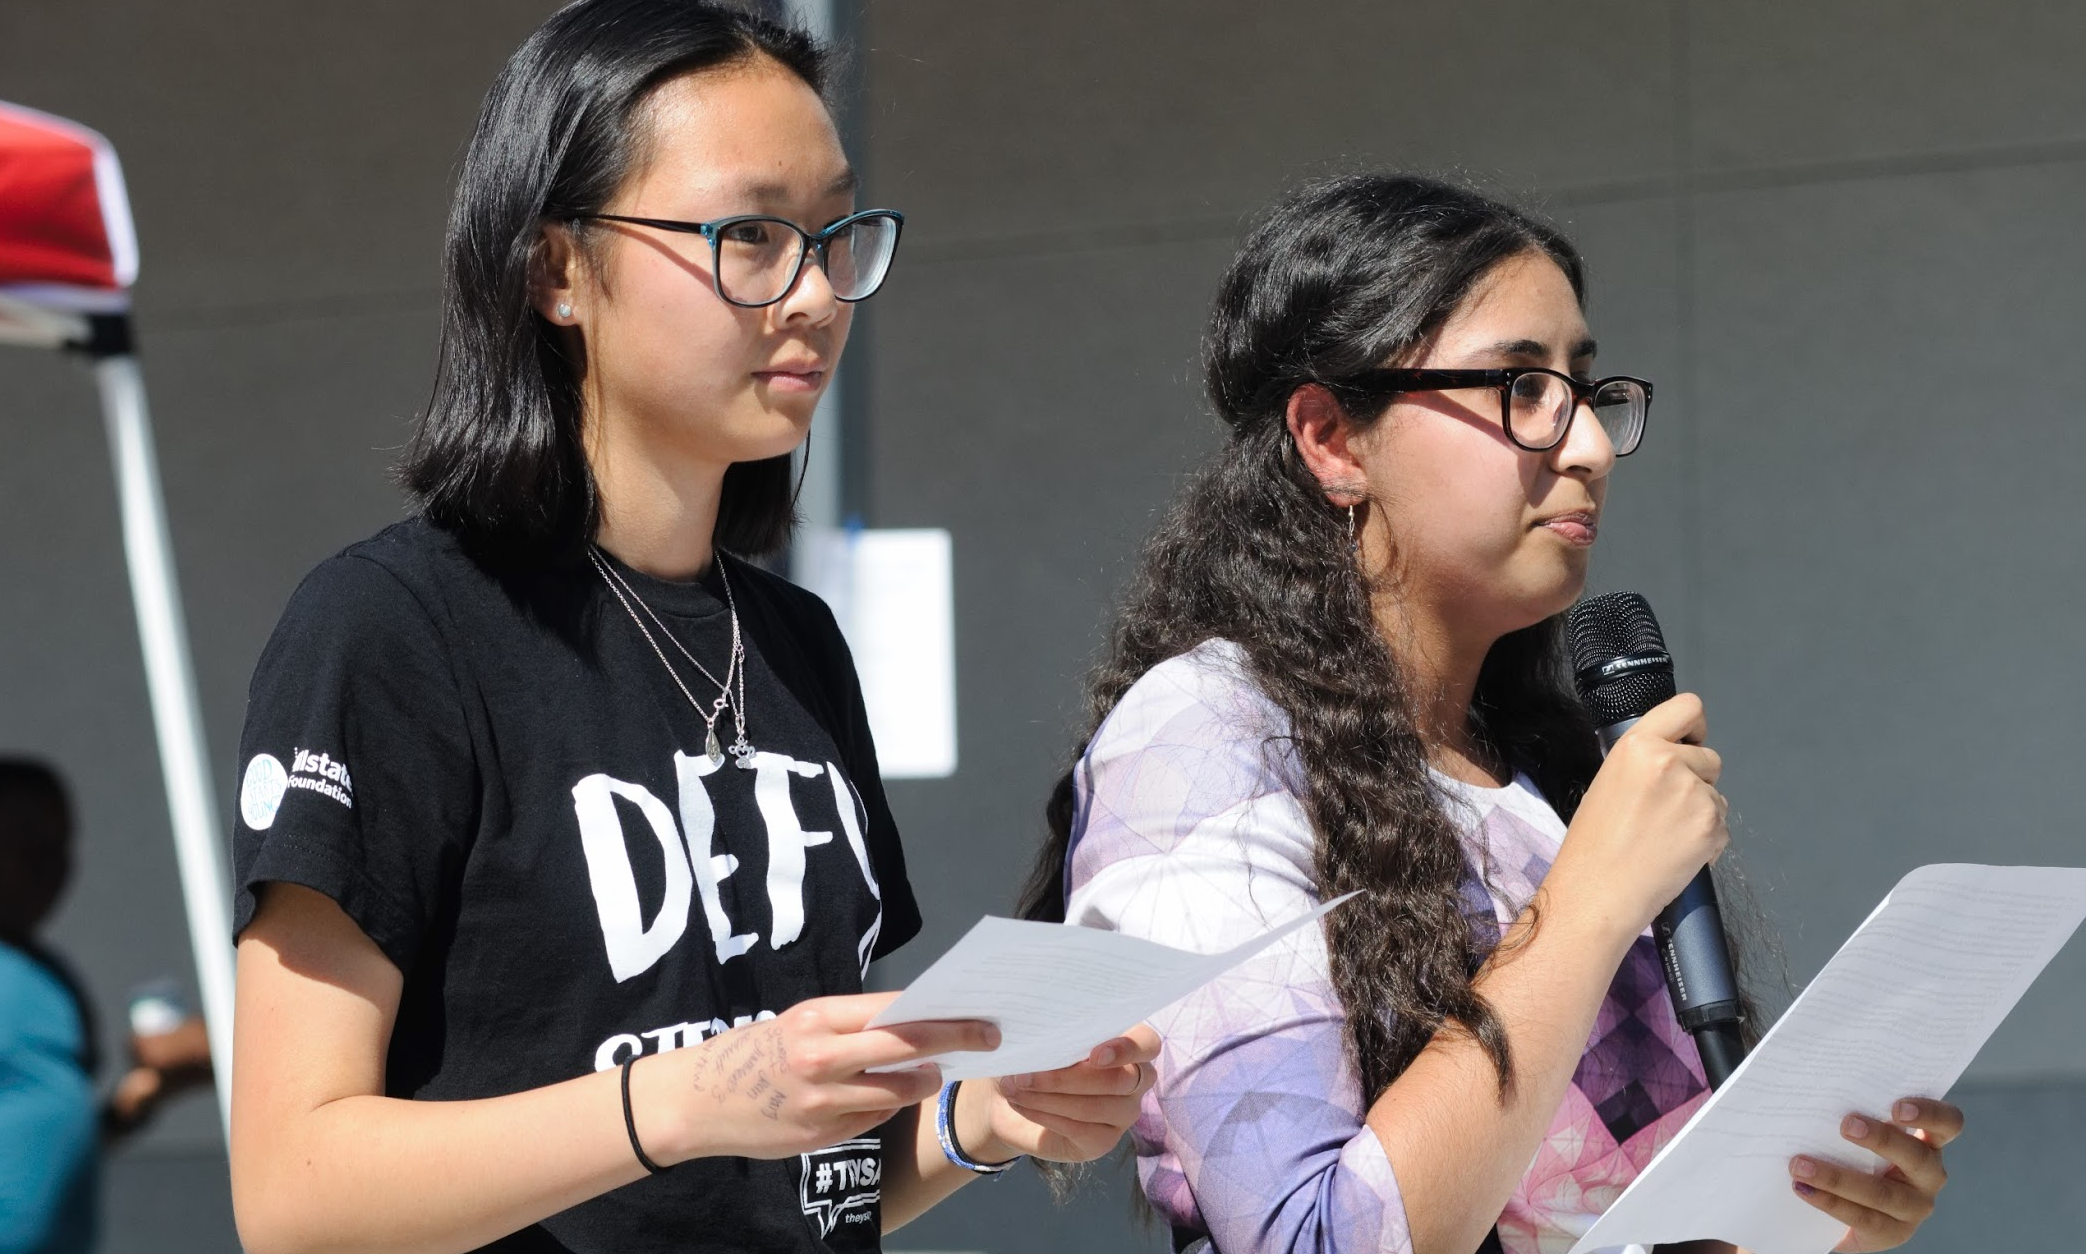 Leaders of WE Club Shealyn Massey '19 and Yoanna Soliman '19 stand on the stage and ask various questions to students that bring awareness to inequality. Credit: Muriel Rowley / The Foothill Dragon Press